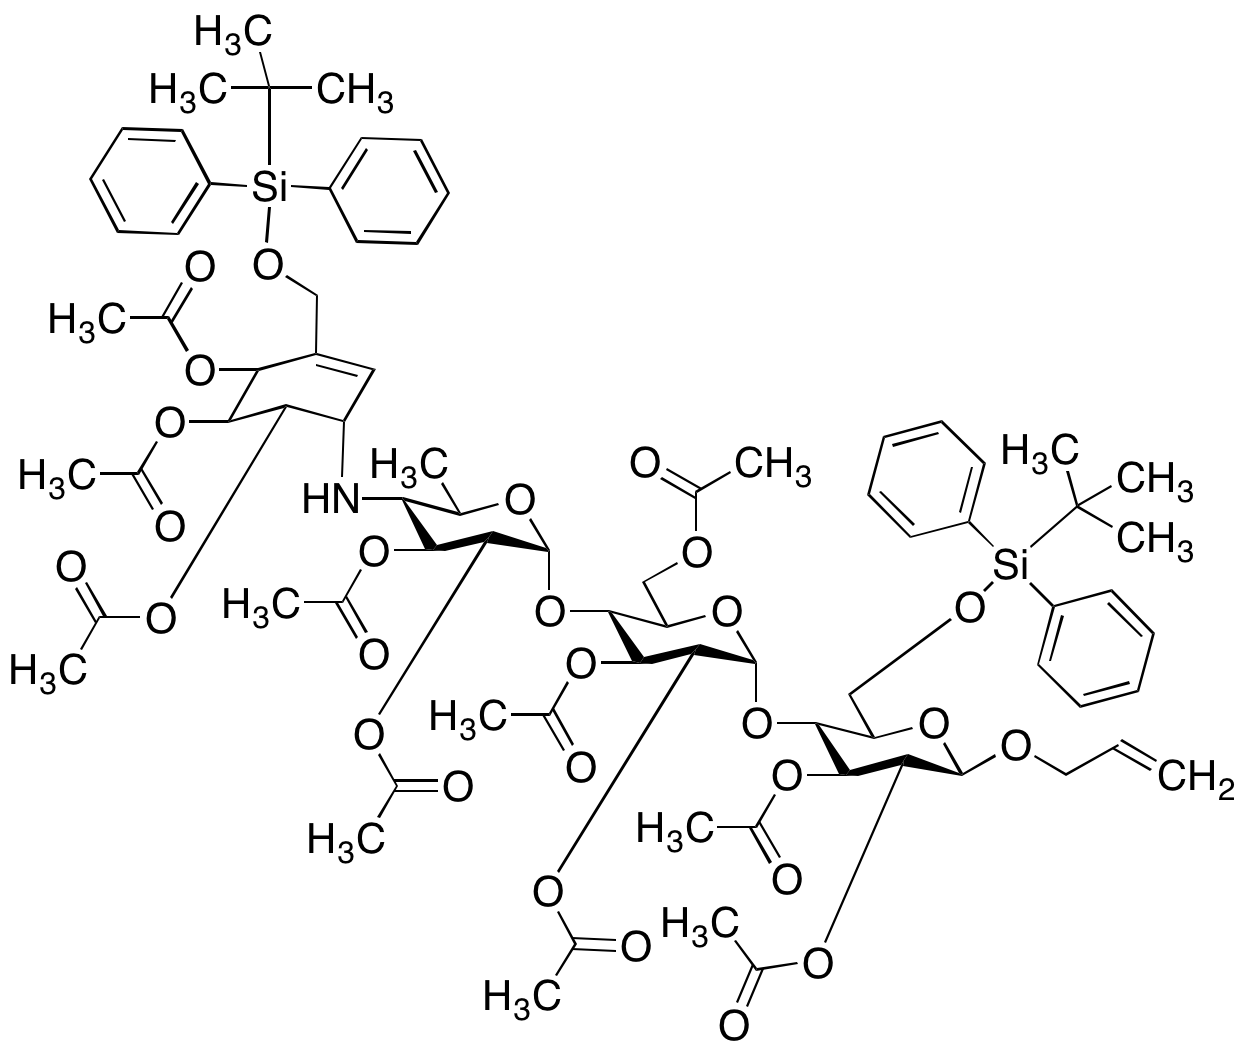 Acarbose O-Allyl Ether Bis-O-t-butyldiphenylsilane Ester Deca-acetate